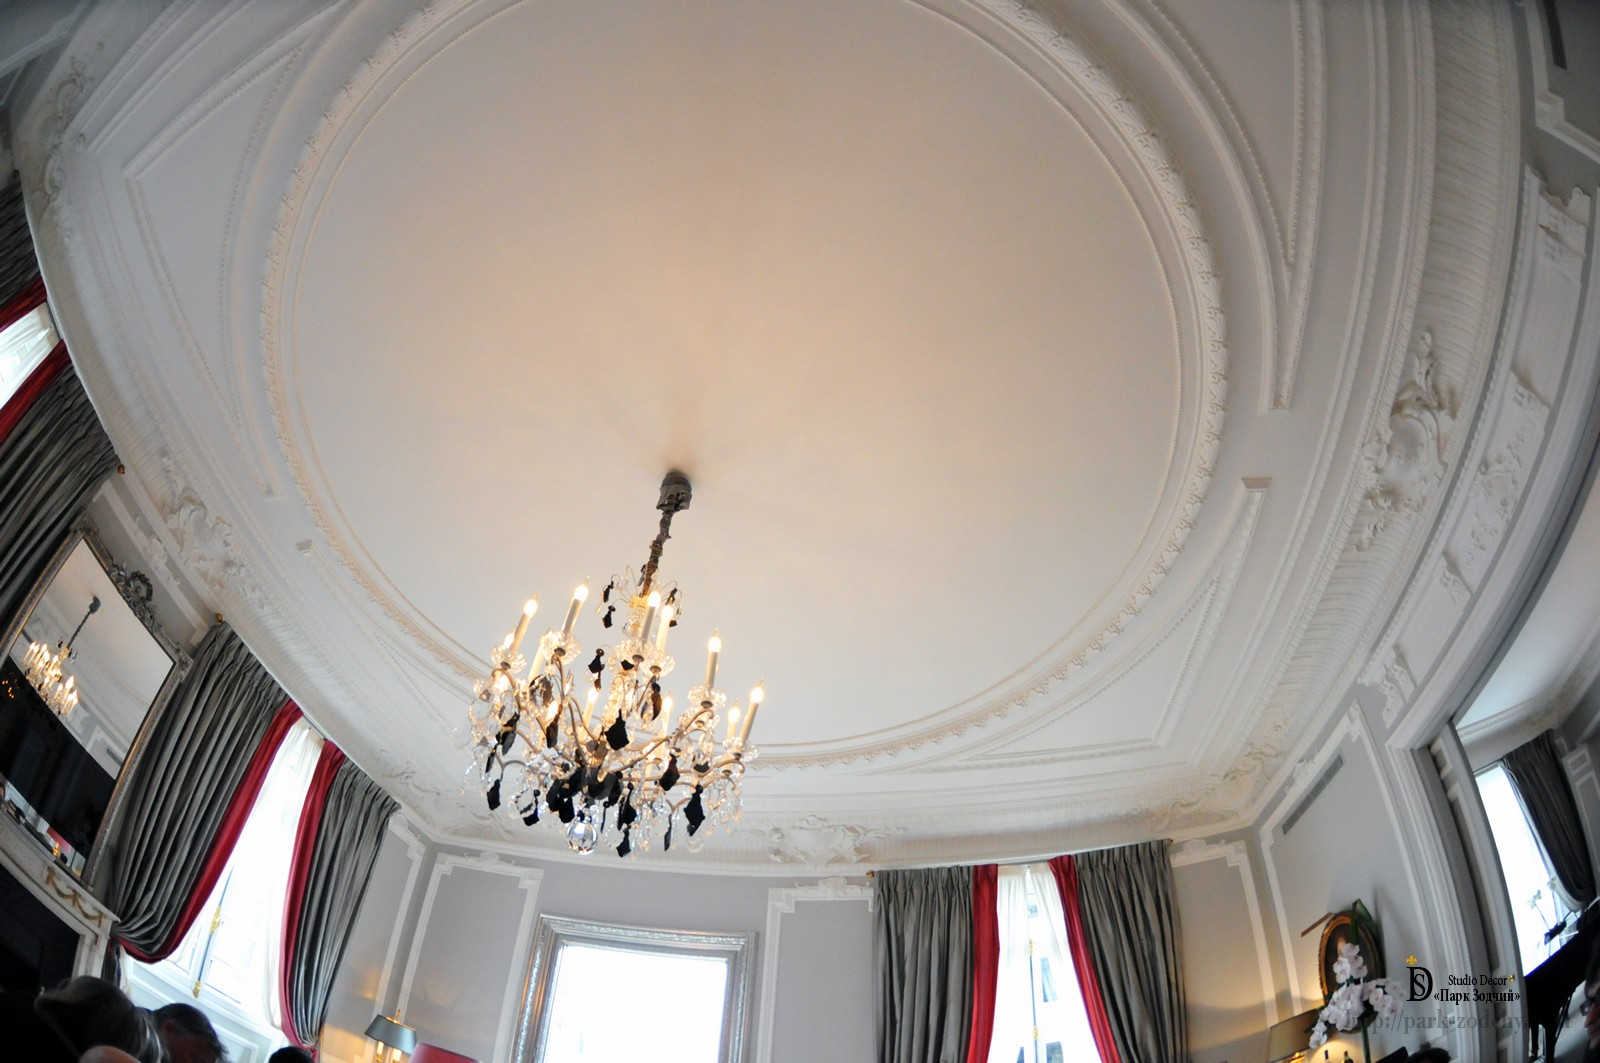 Ceiling molding emphasized the nobility of the interior